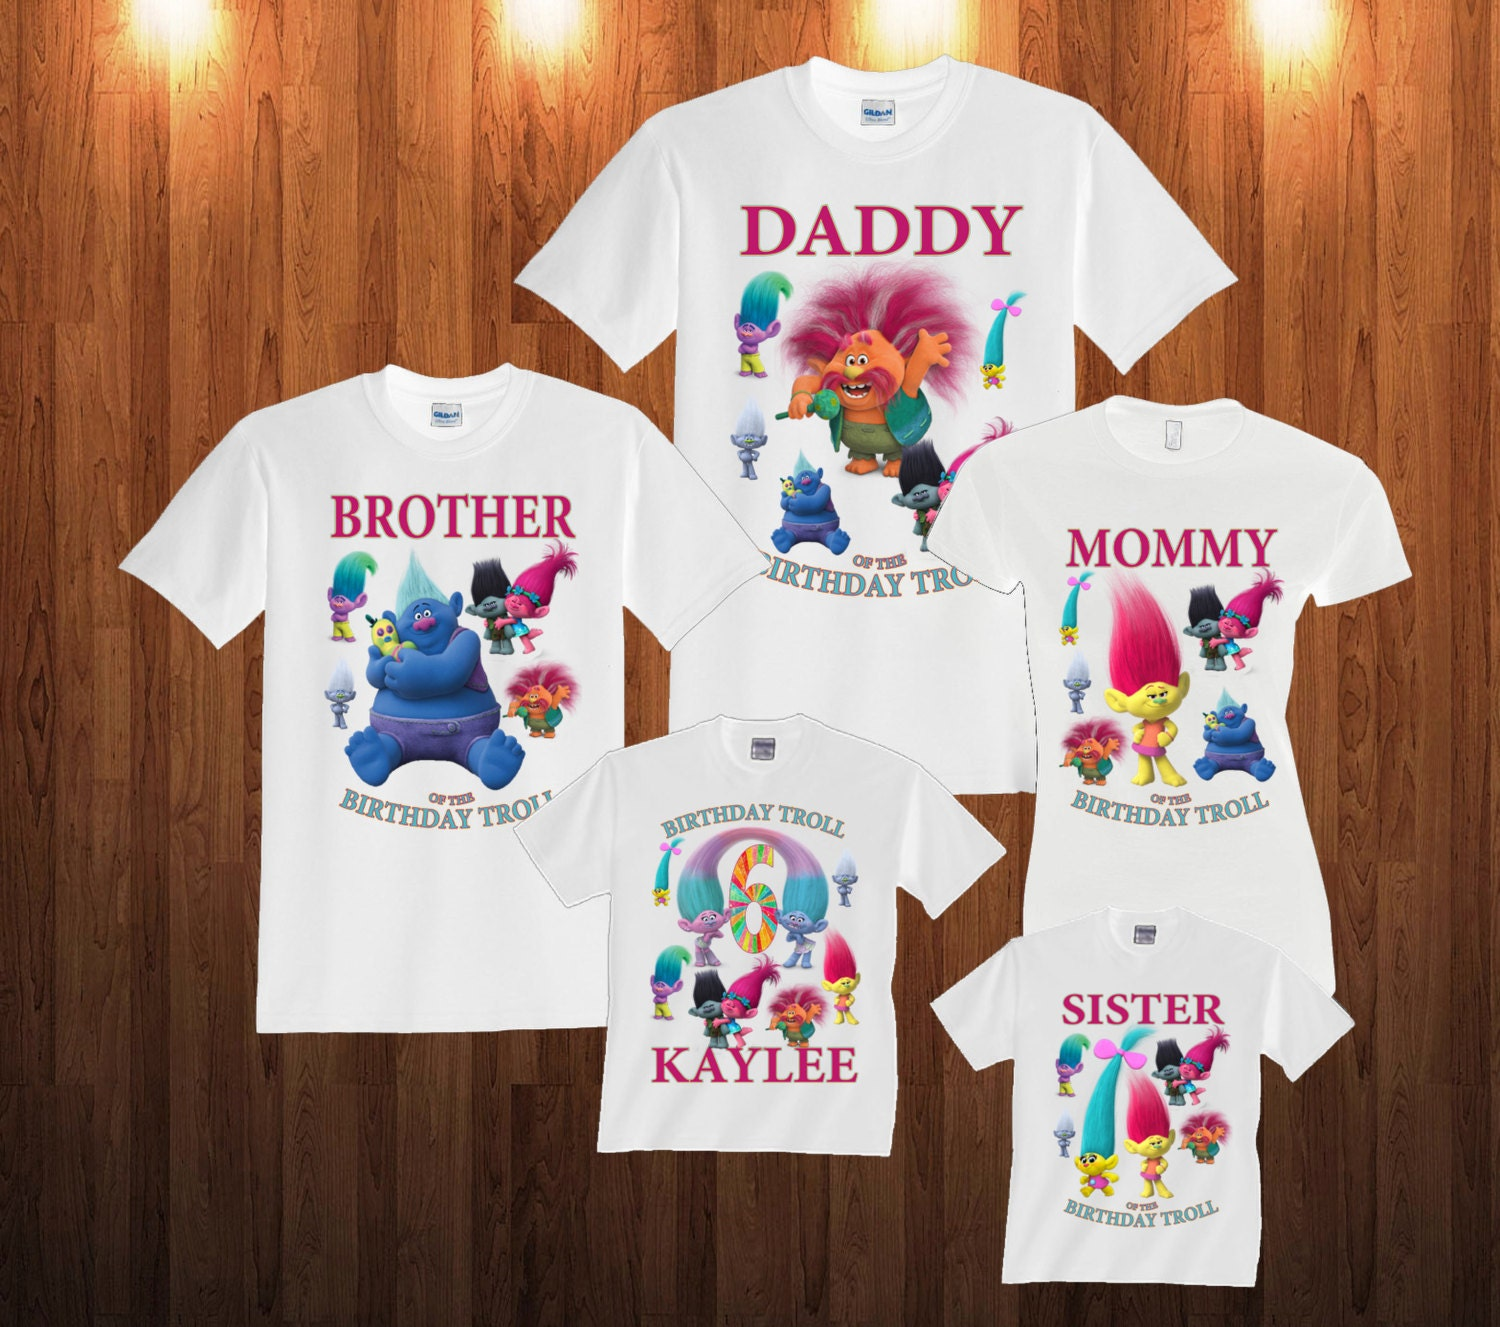 Shirt design for family